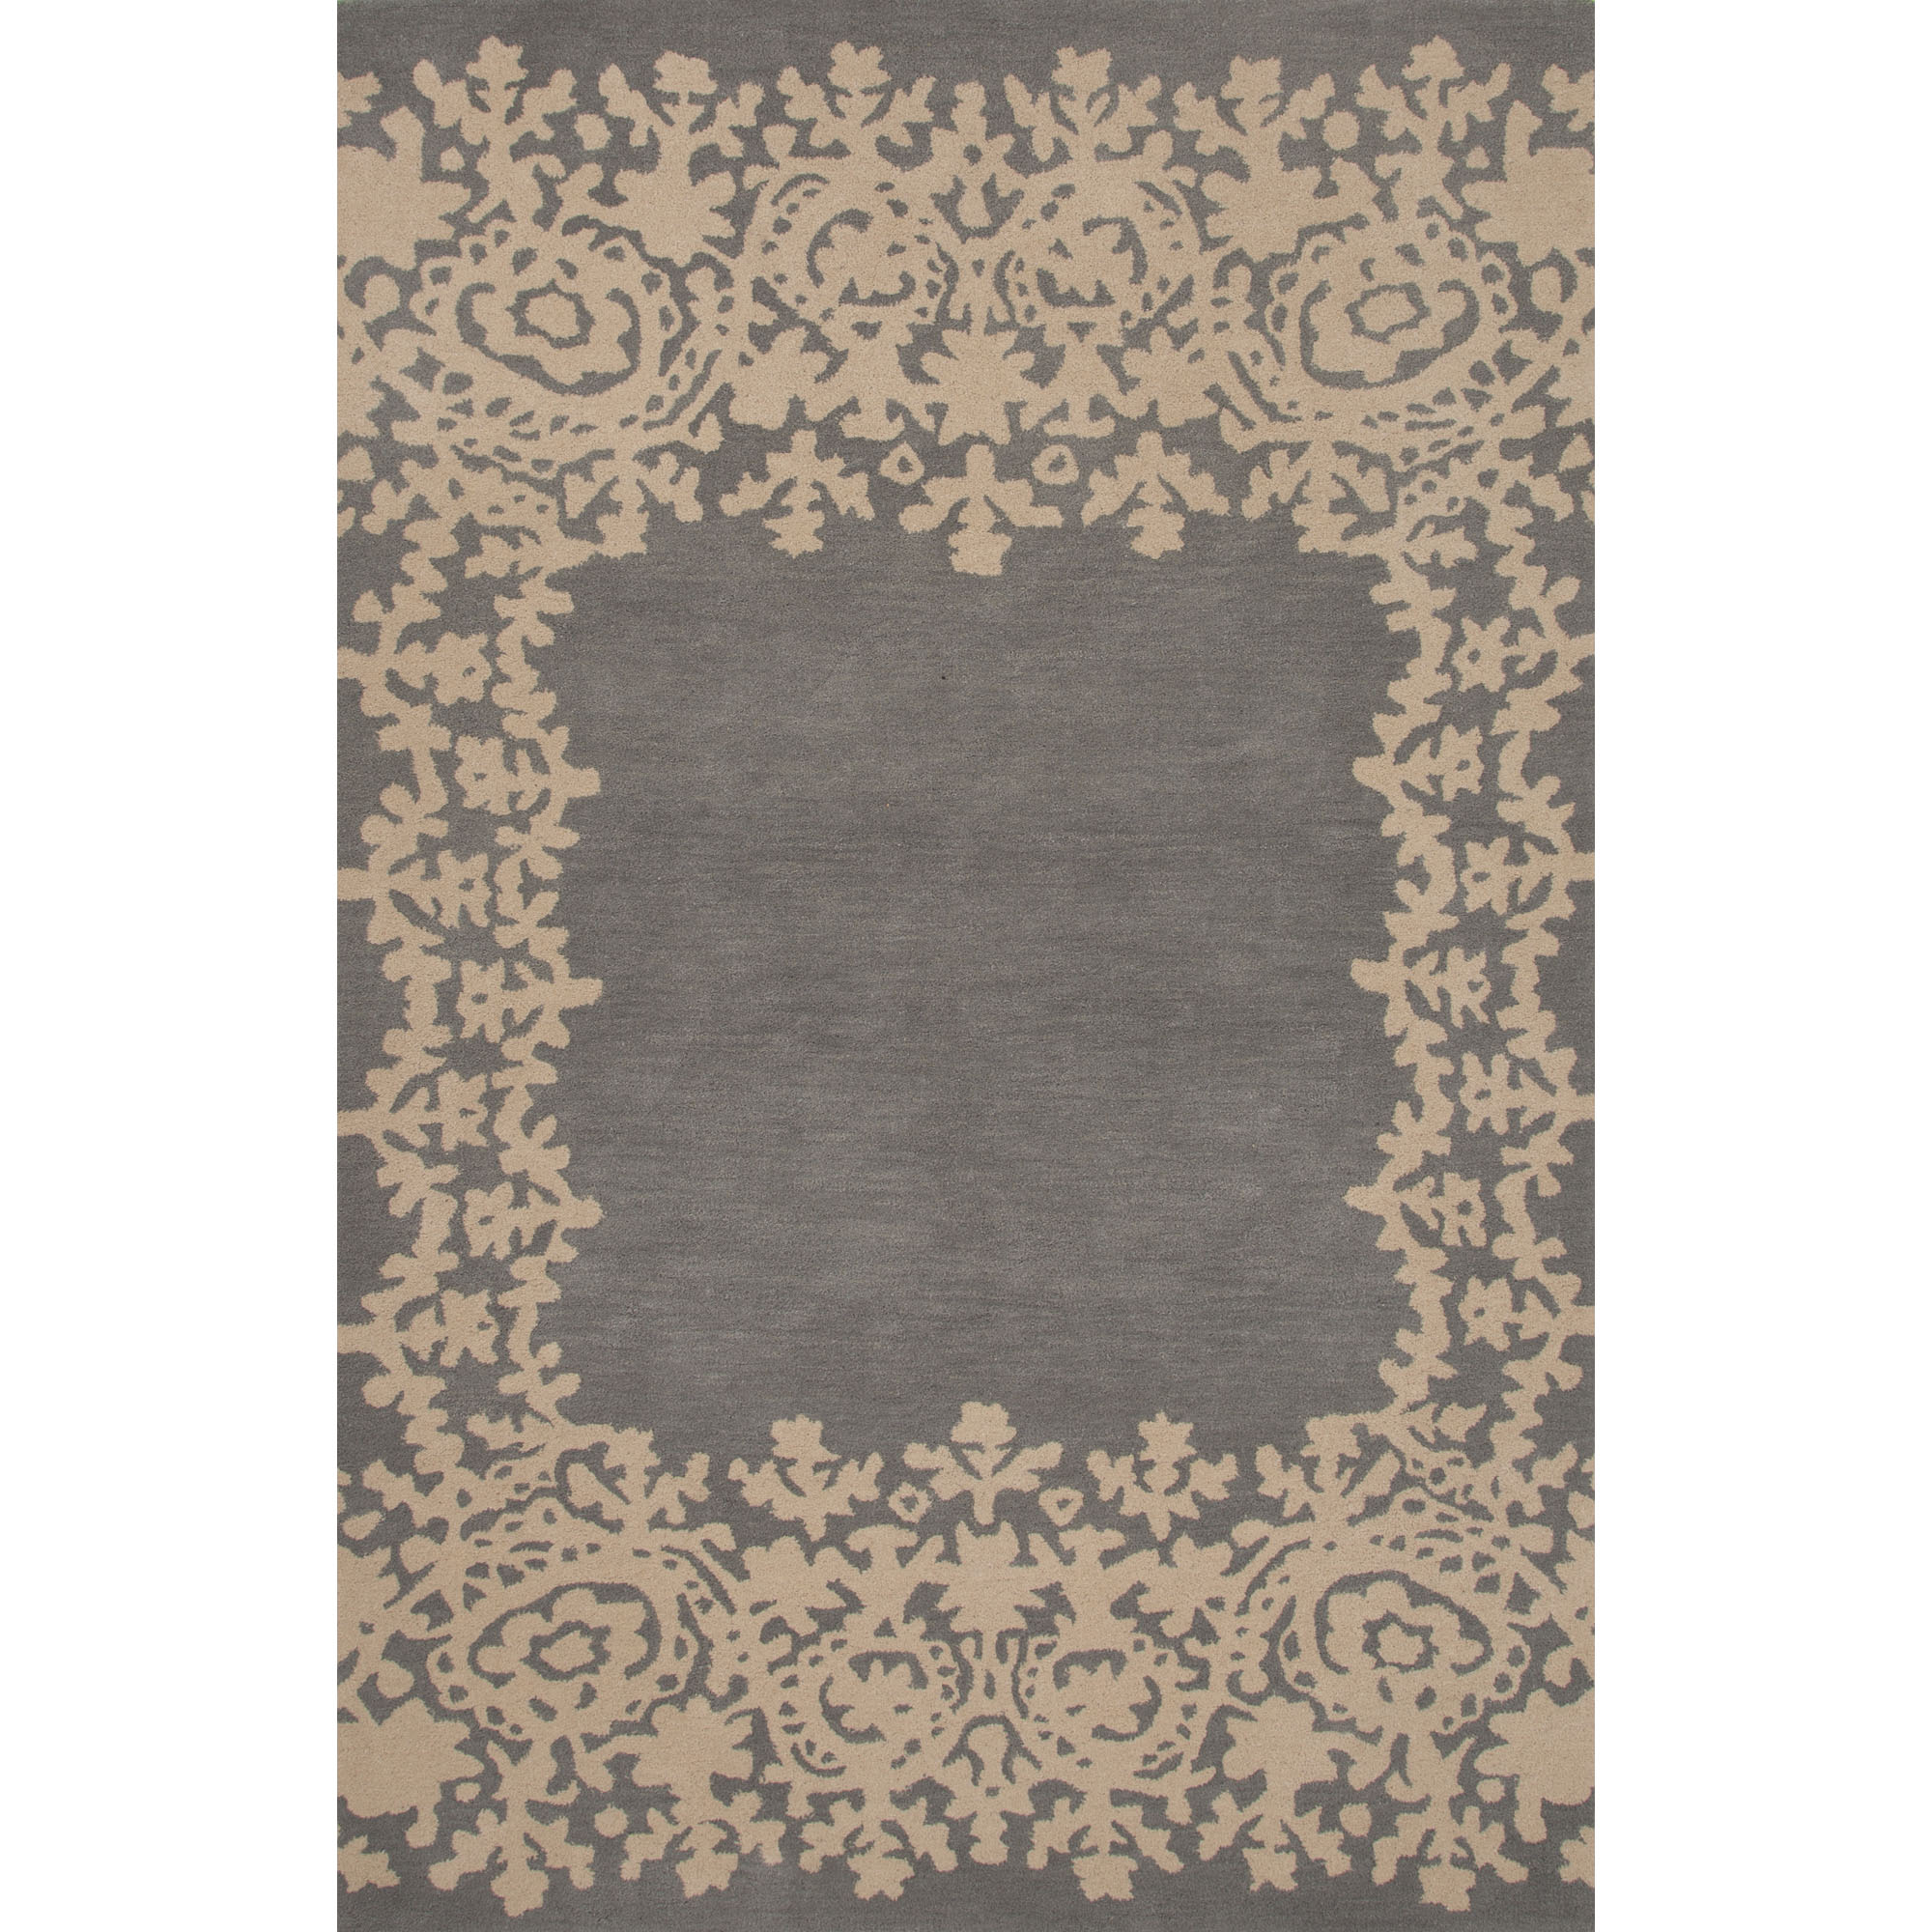 JAIPUR Rugs Traditions Made Modern Tufted 5 x 8 Rug - Item Number: RUG121386